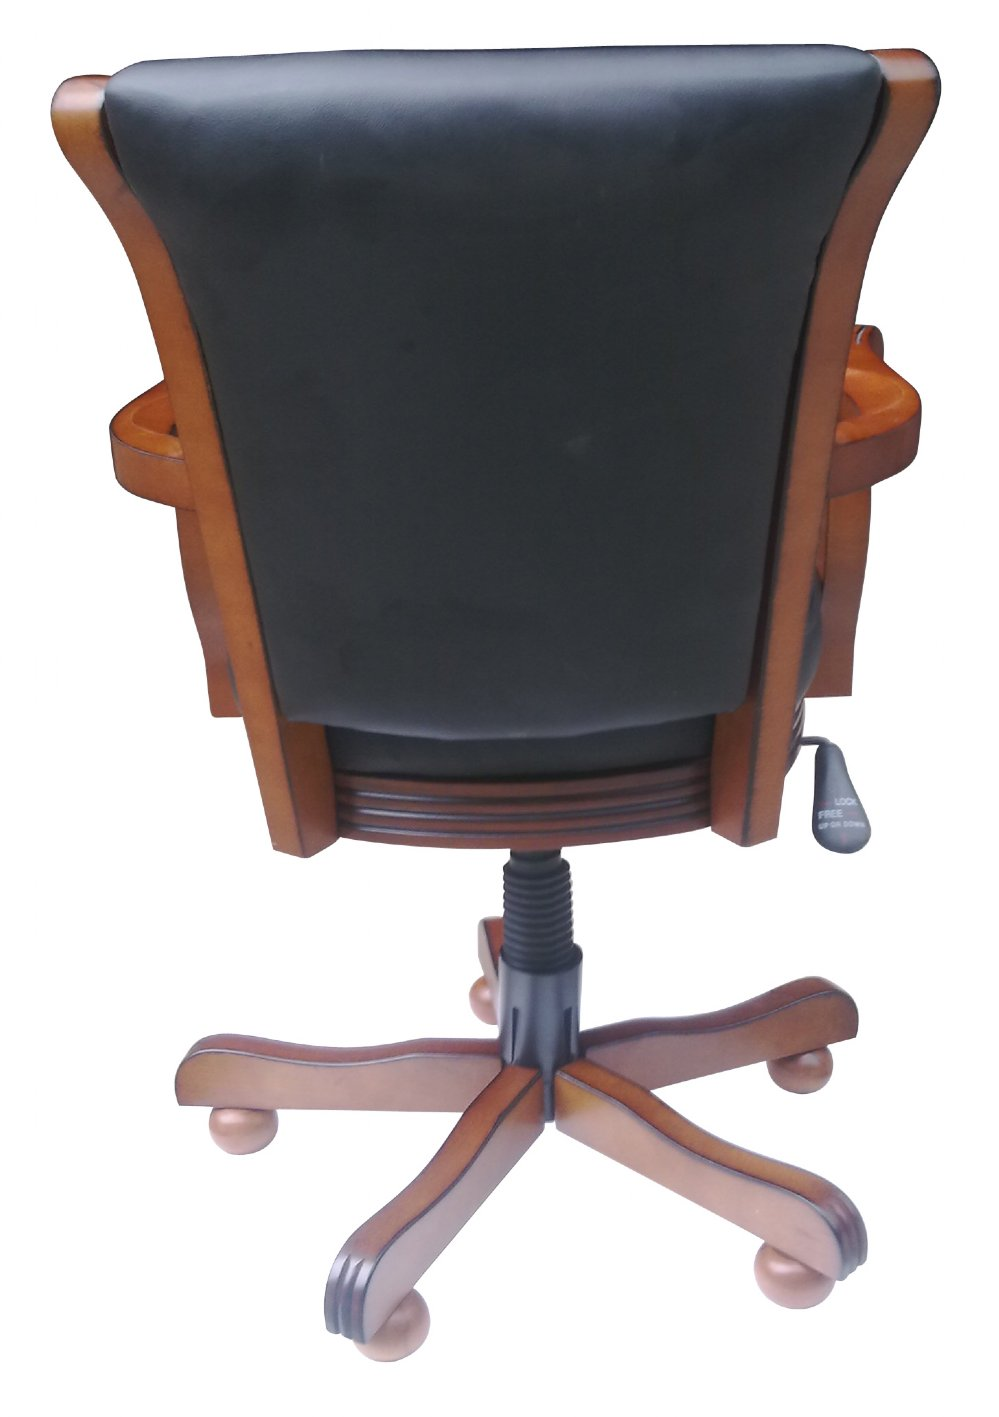 cheap rolling chairs armchair tray table chair conversion convert your caster into non chairconvers 671 detail jpg